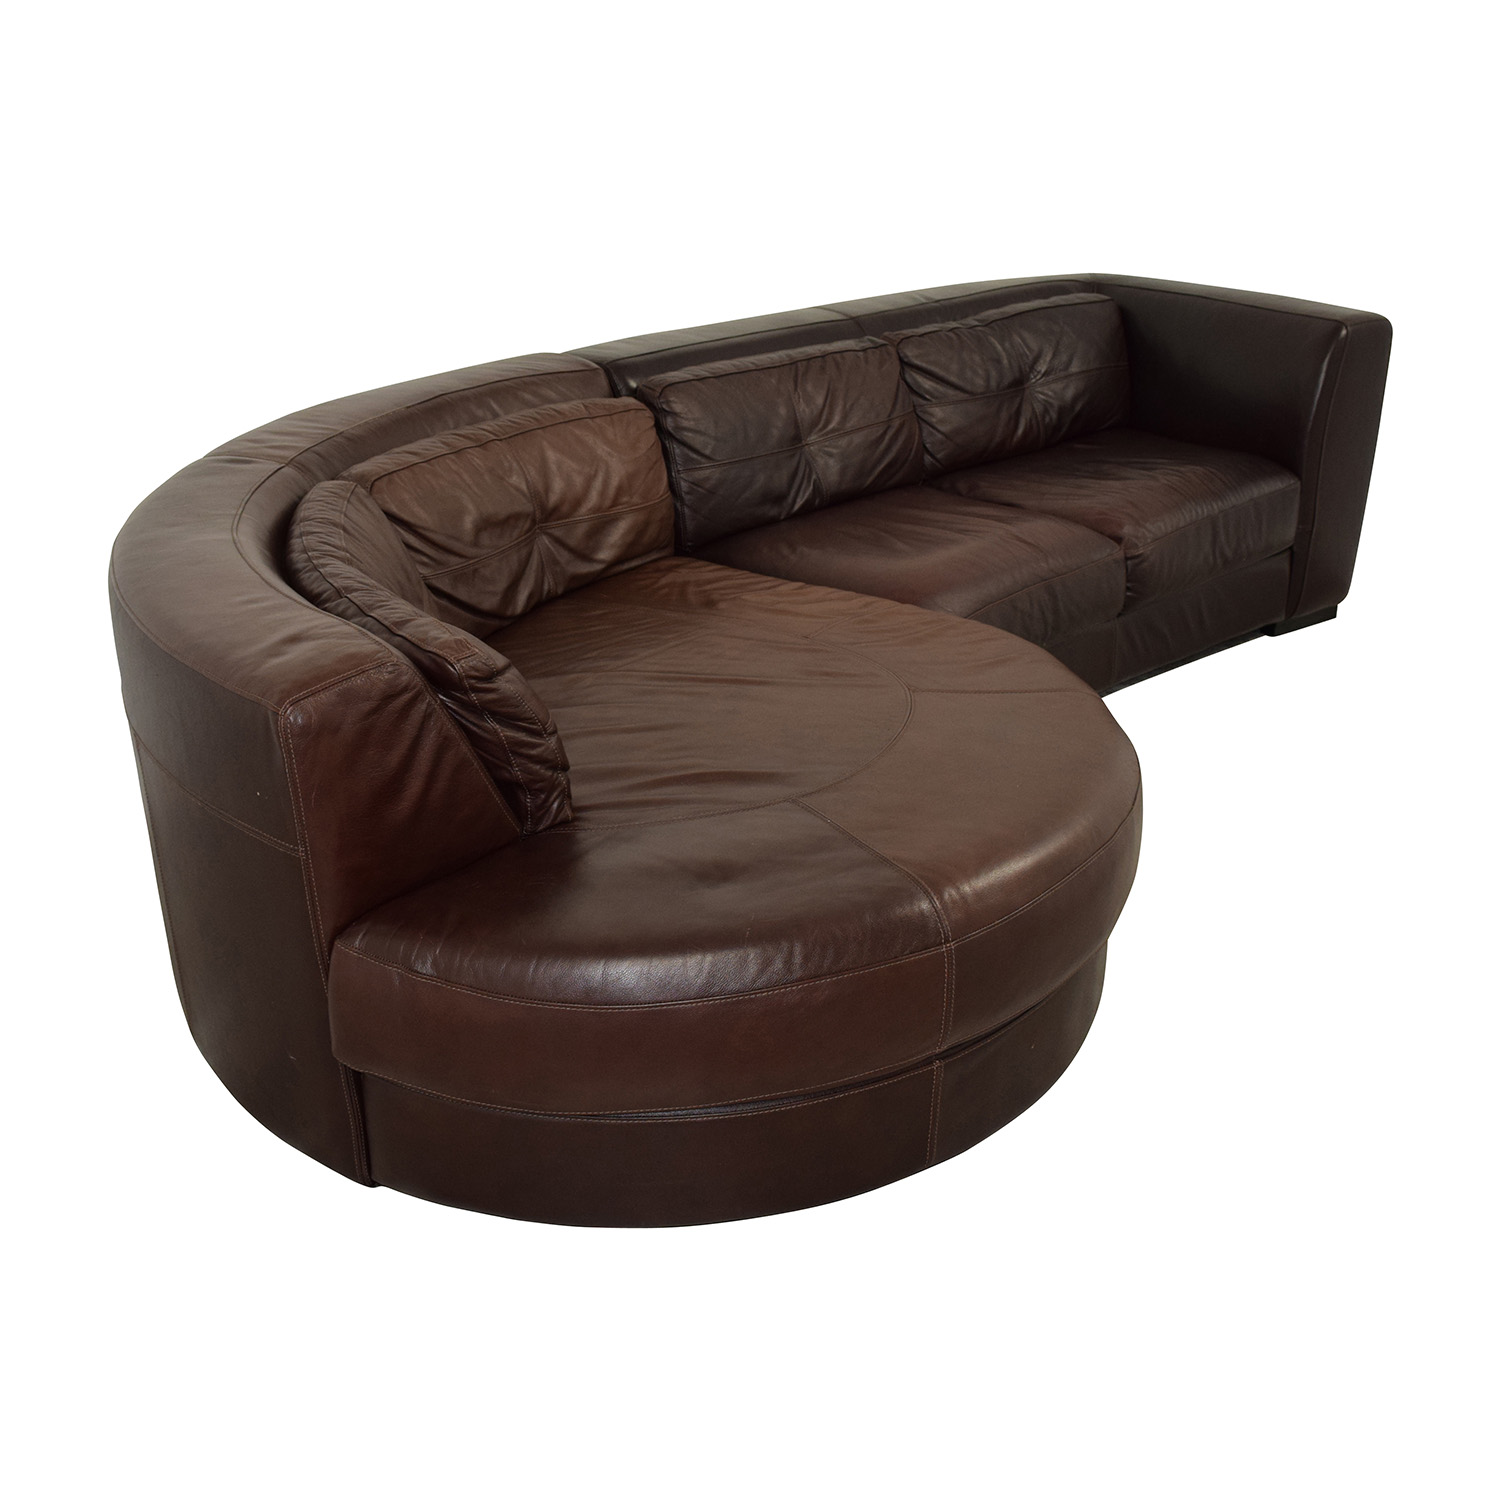 70 off chateau d 39 ax chateau d 39 ax leather sectional with for Brown leather sectional with chaise